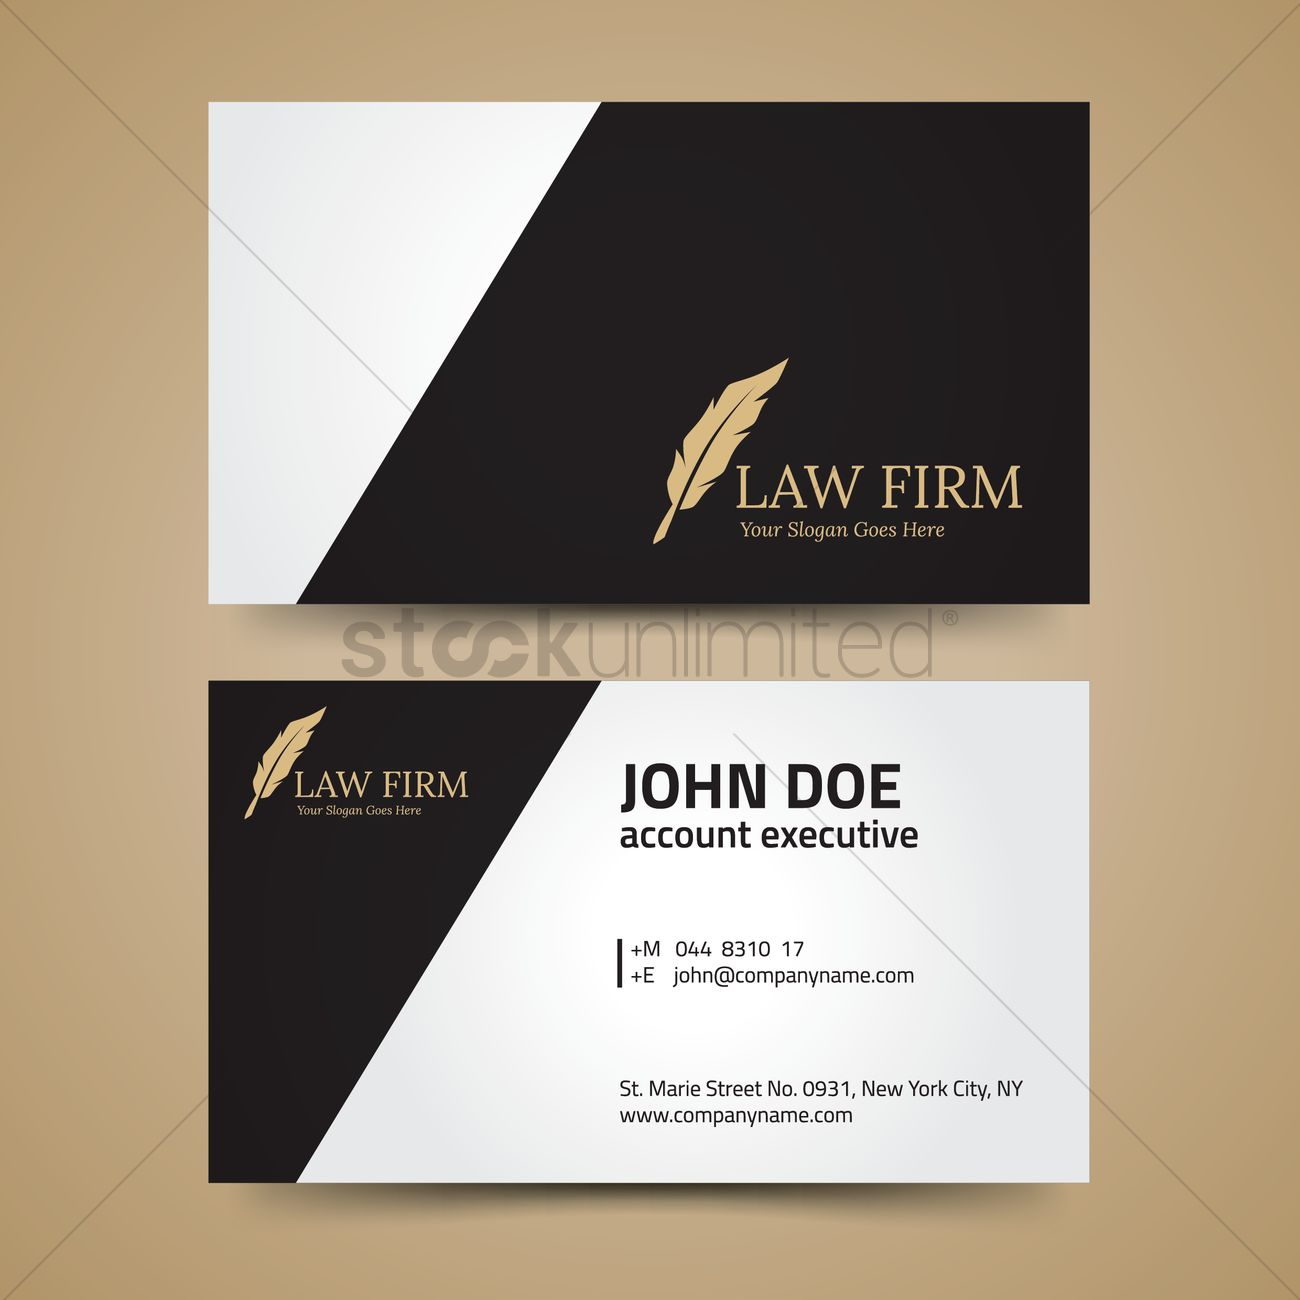 Law firm business cards morenpulsar law firm business cards cheaphphosting Gallery